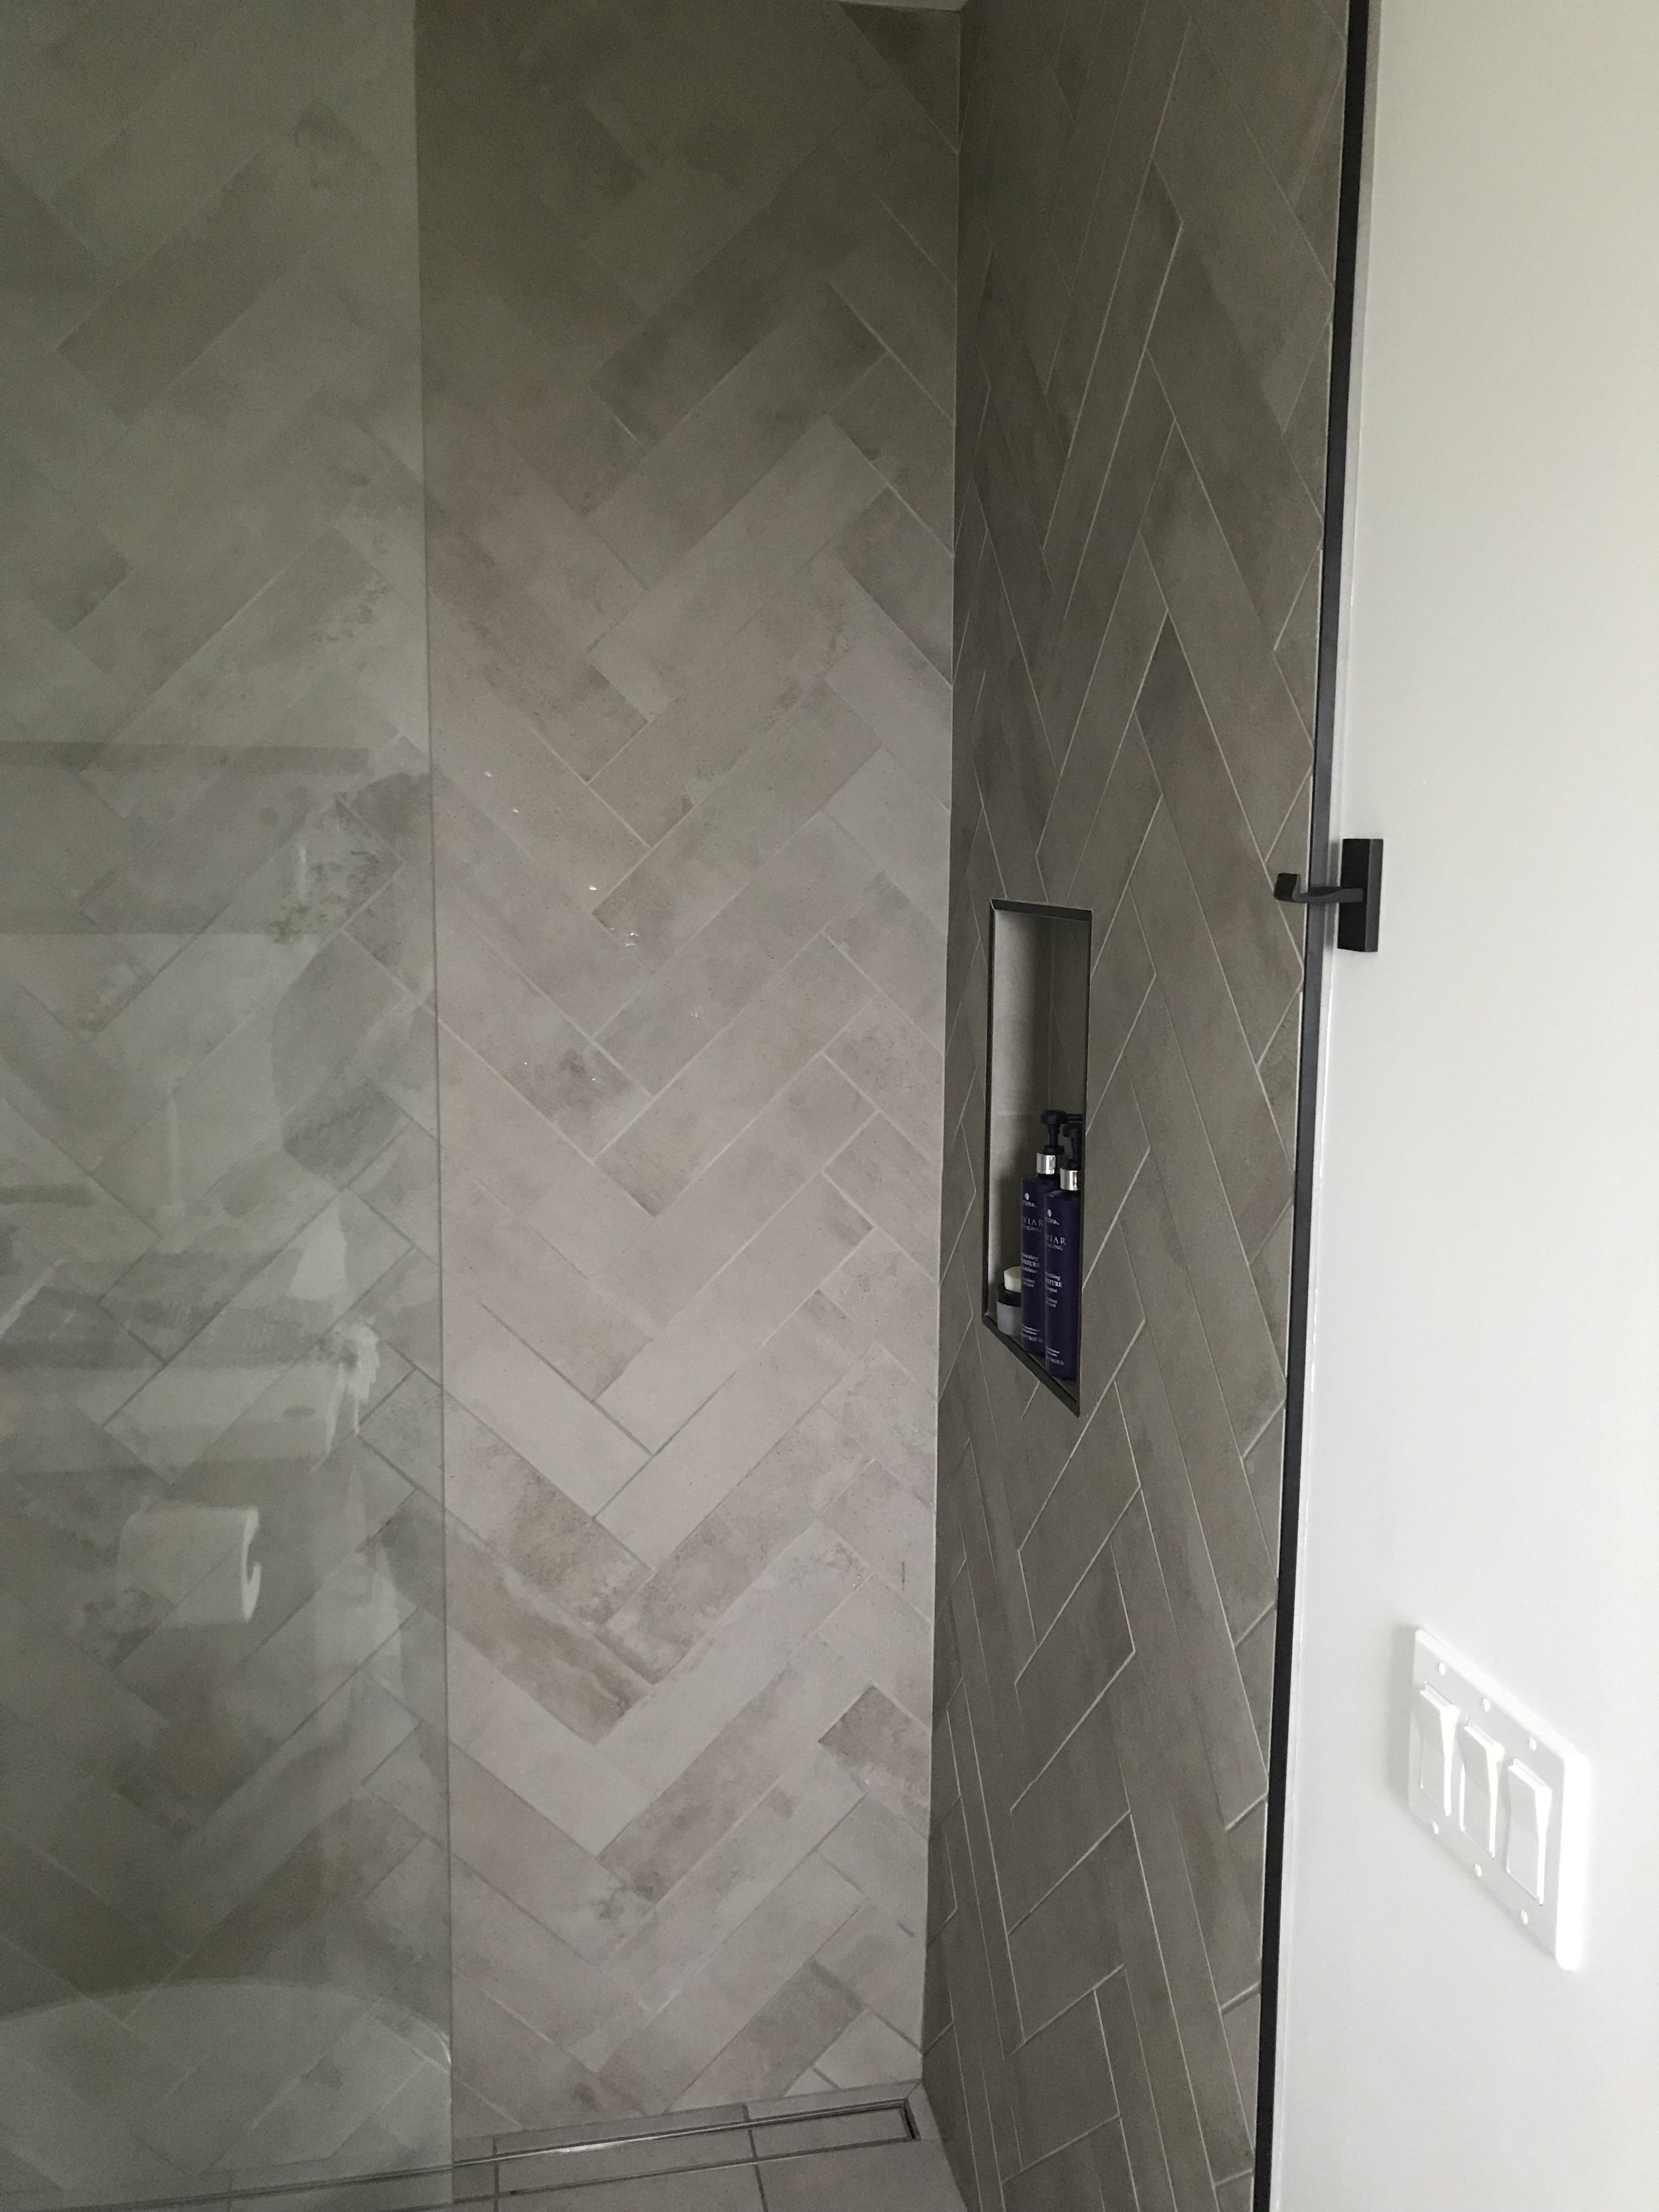 The shower walls are covered in Italian tiles laid in a herringbone pattern and is enclosed with a floor to ceiling single pane of glass.